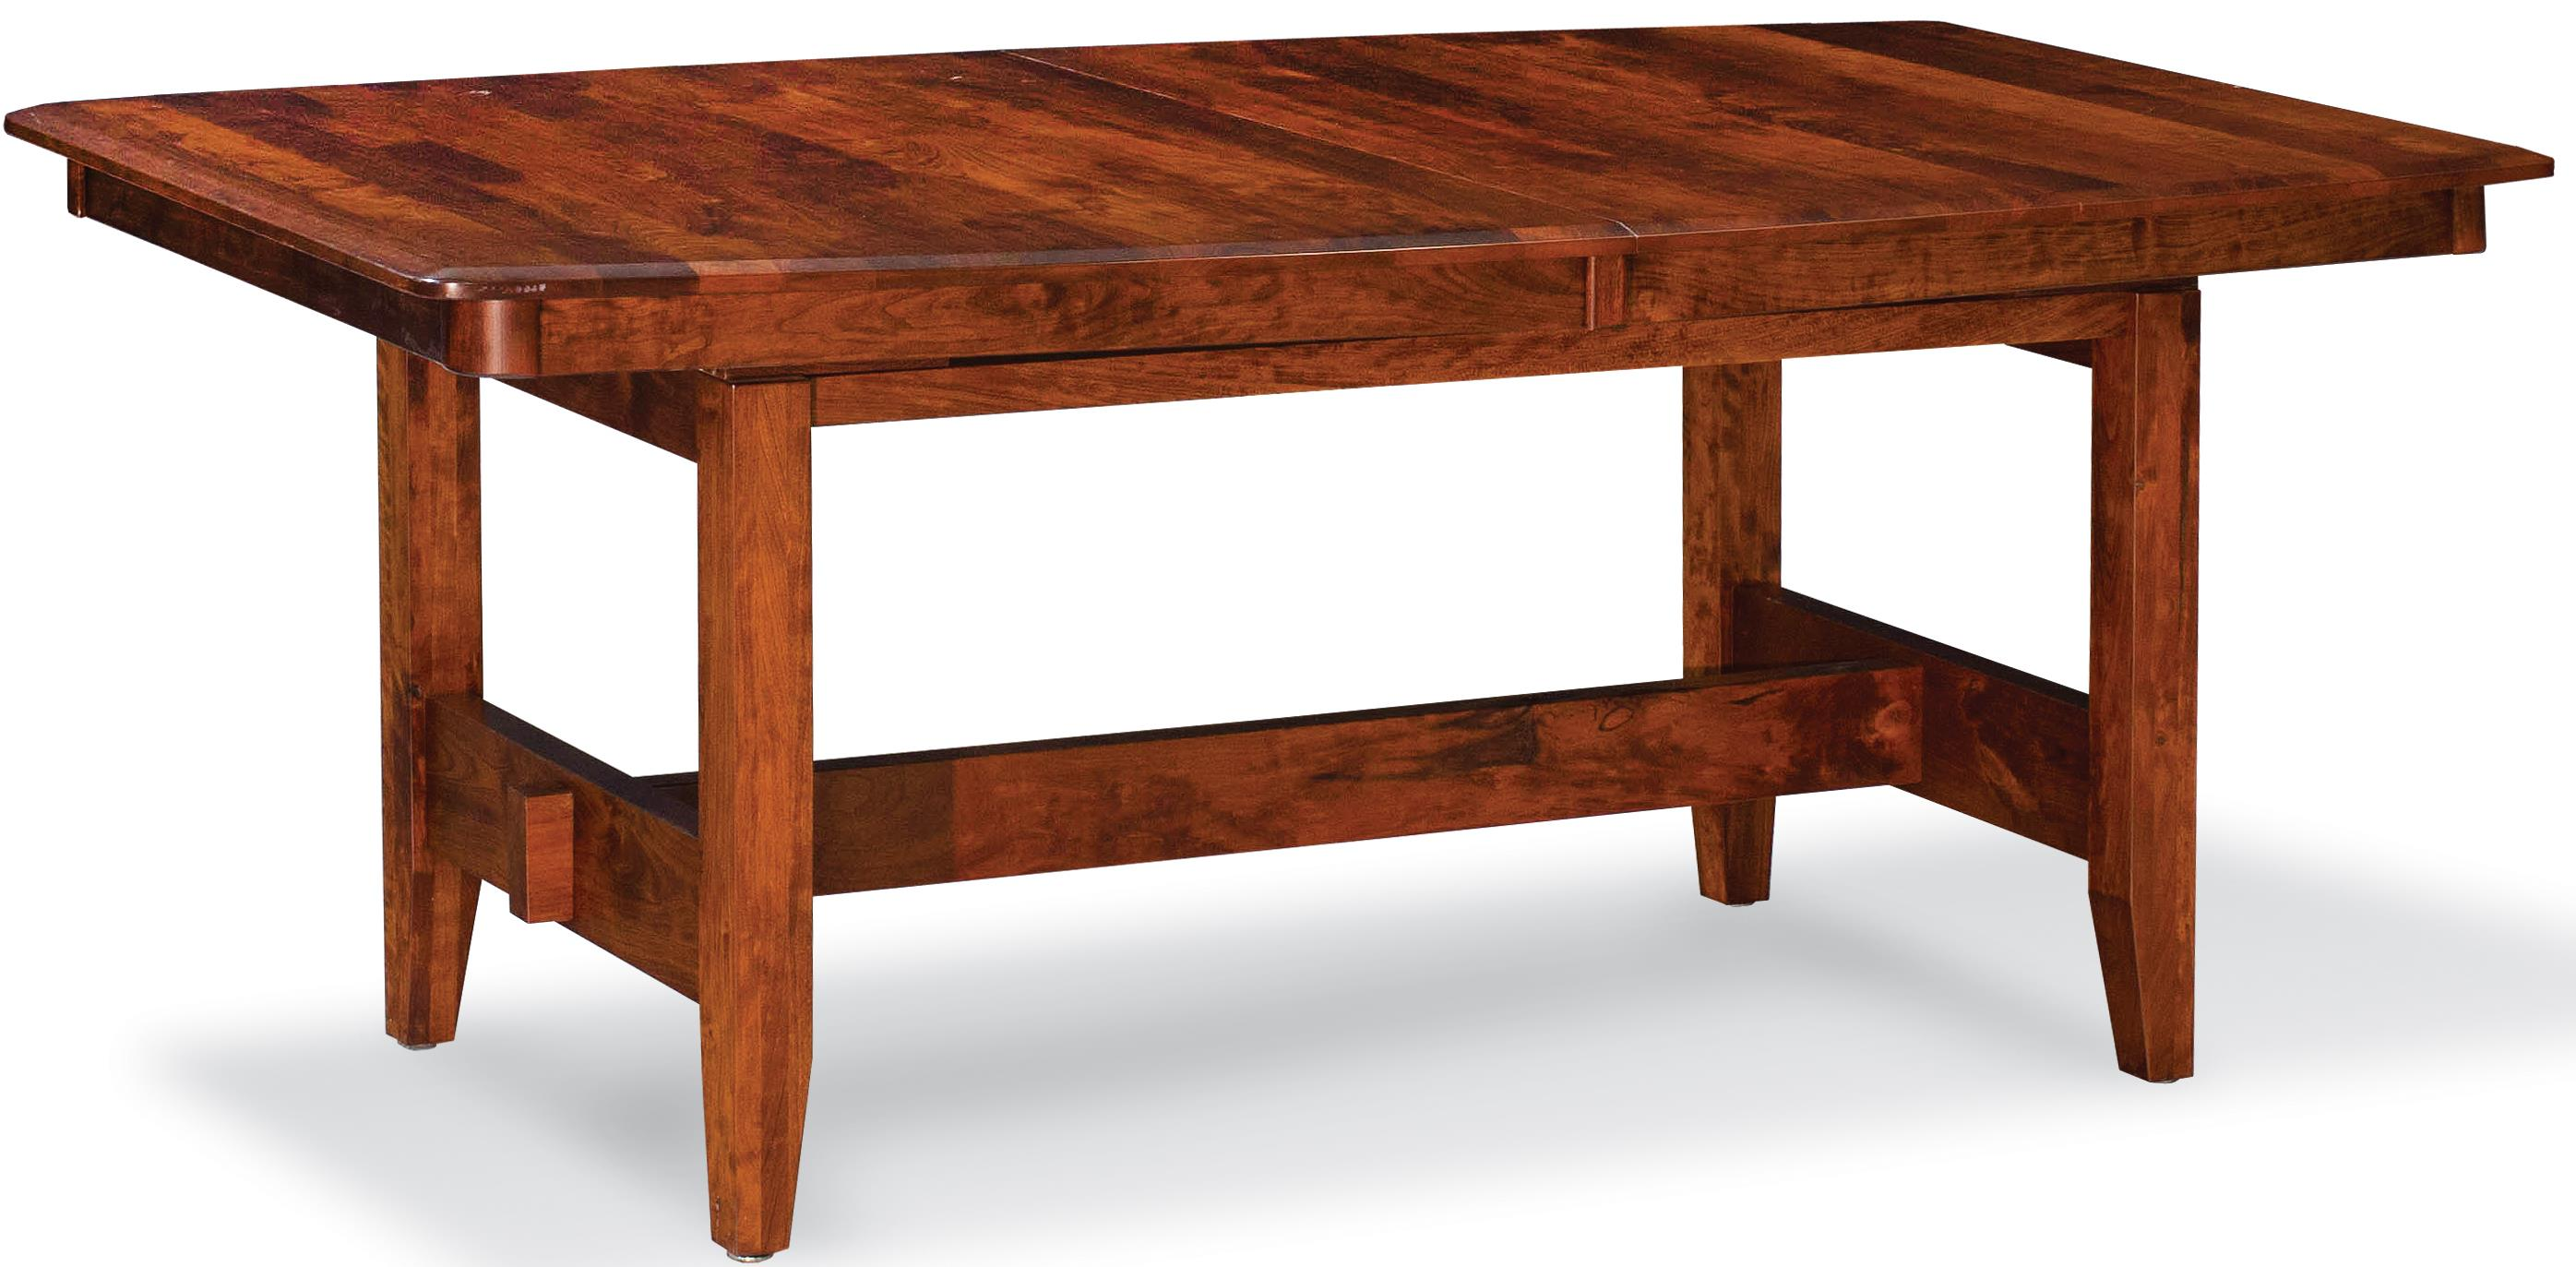 Simply amish shenandoah xk26 etshs h07f16e trestle table for Simply amish furniture